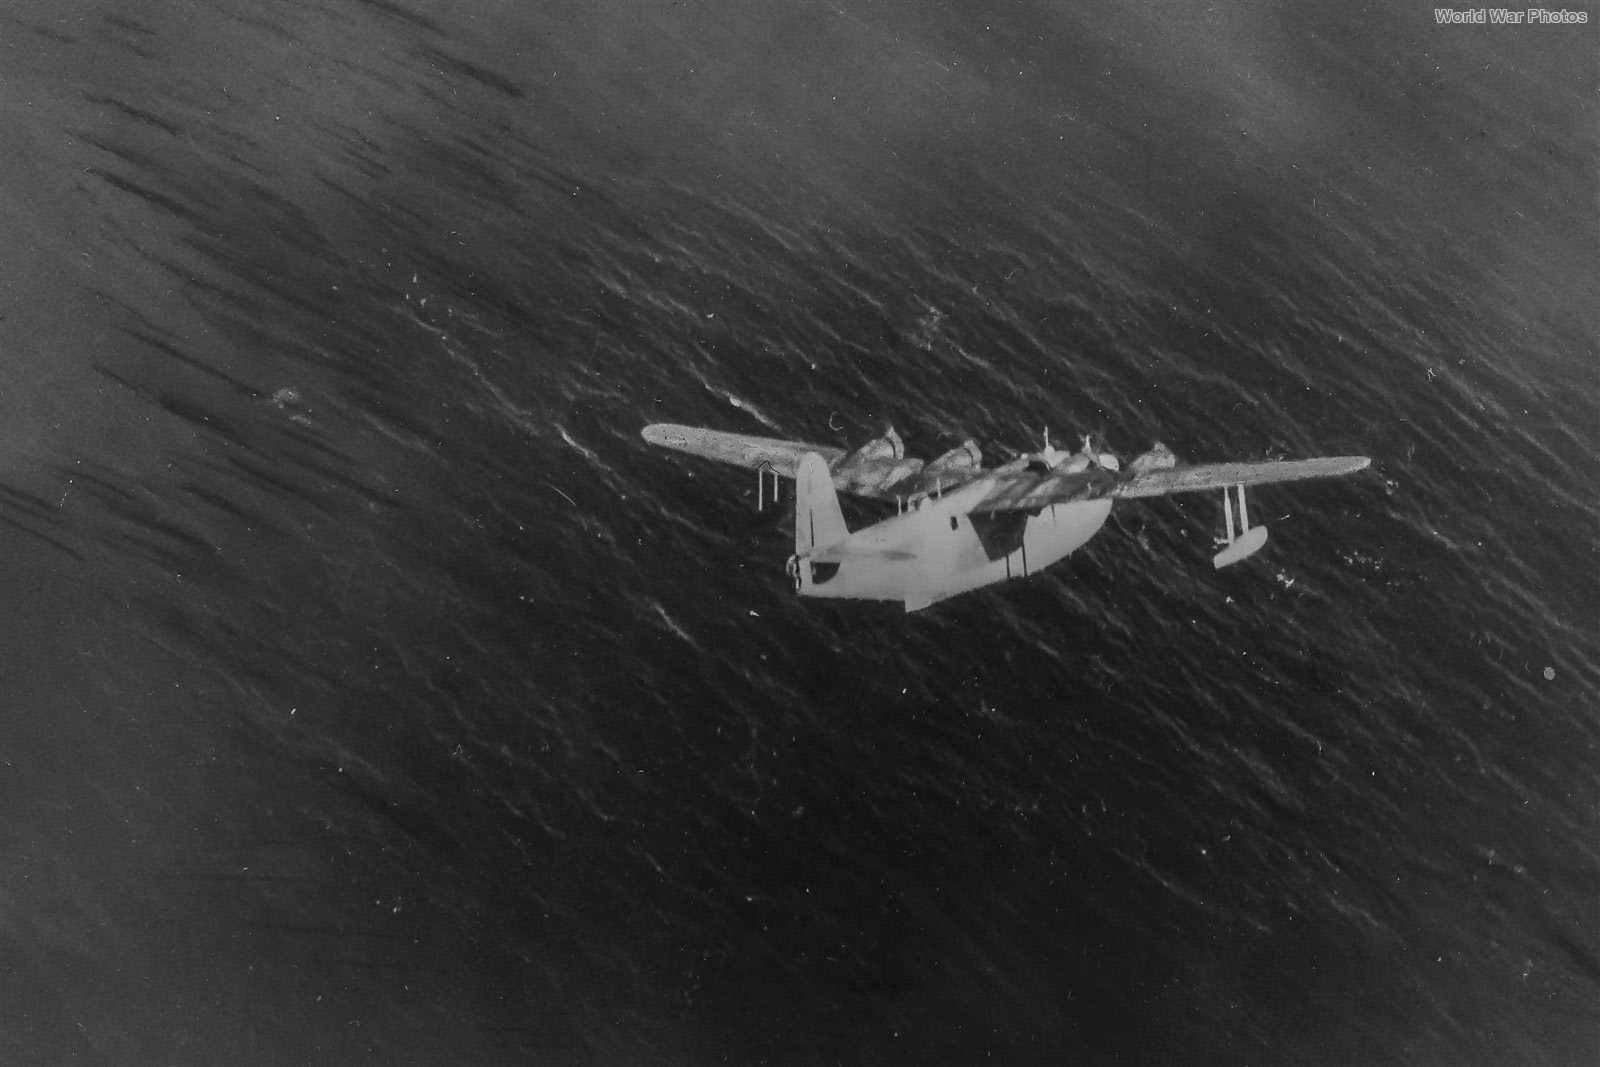 H8K under attack by USN Aircraft 44